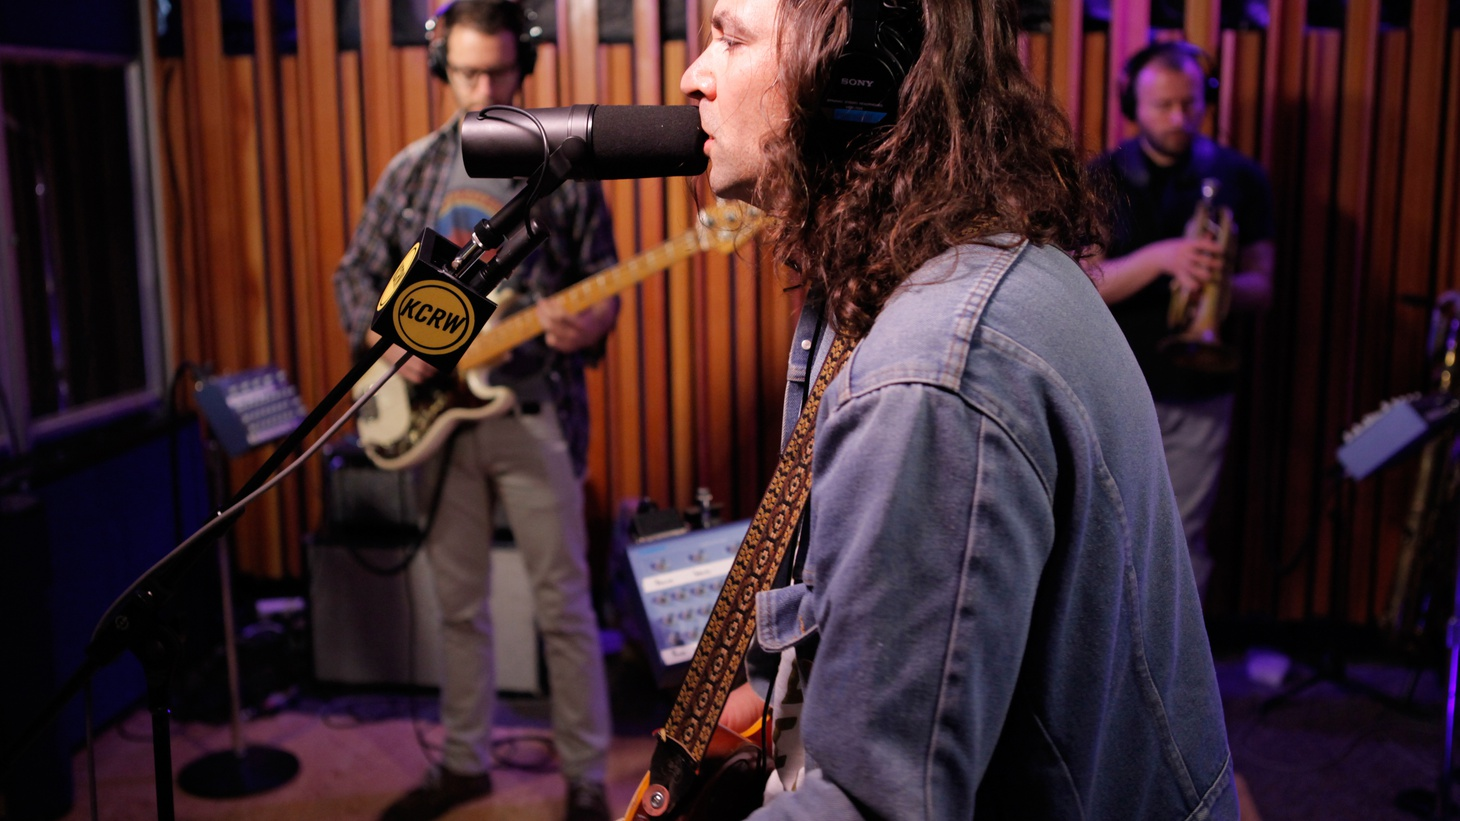 Philadelphia's The War On Drugs have released one of the best albums of the year and we are happy to share a special podcast featuring their entire live session.